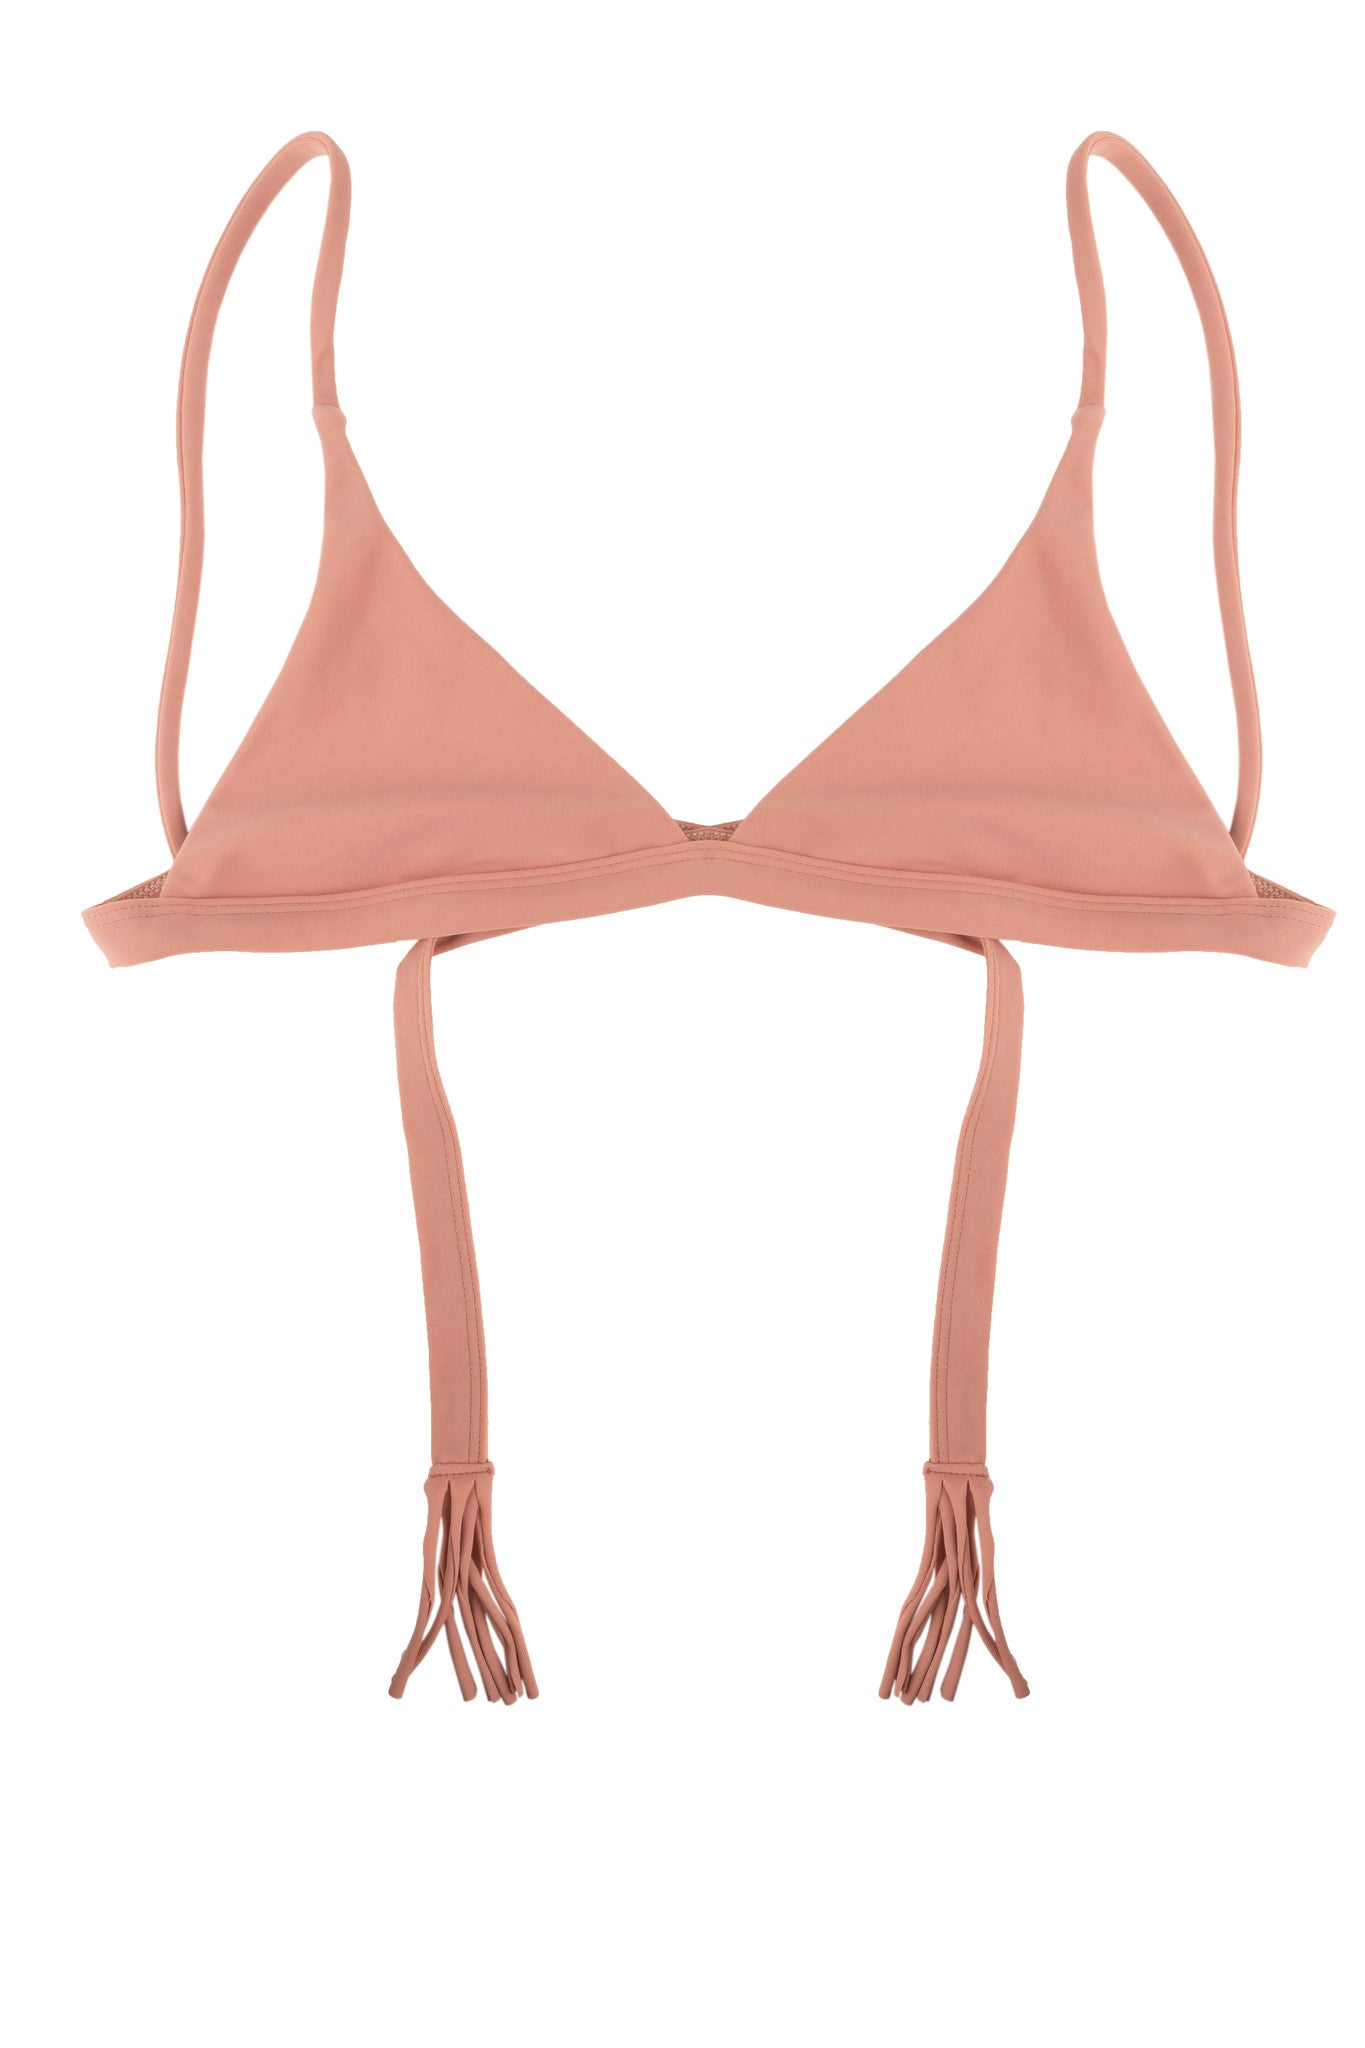 Cayman Top - Eurvin Swimwear & Clothing - Australia Made